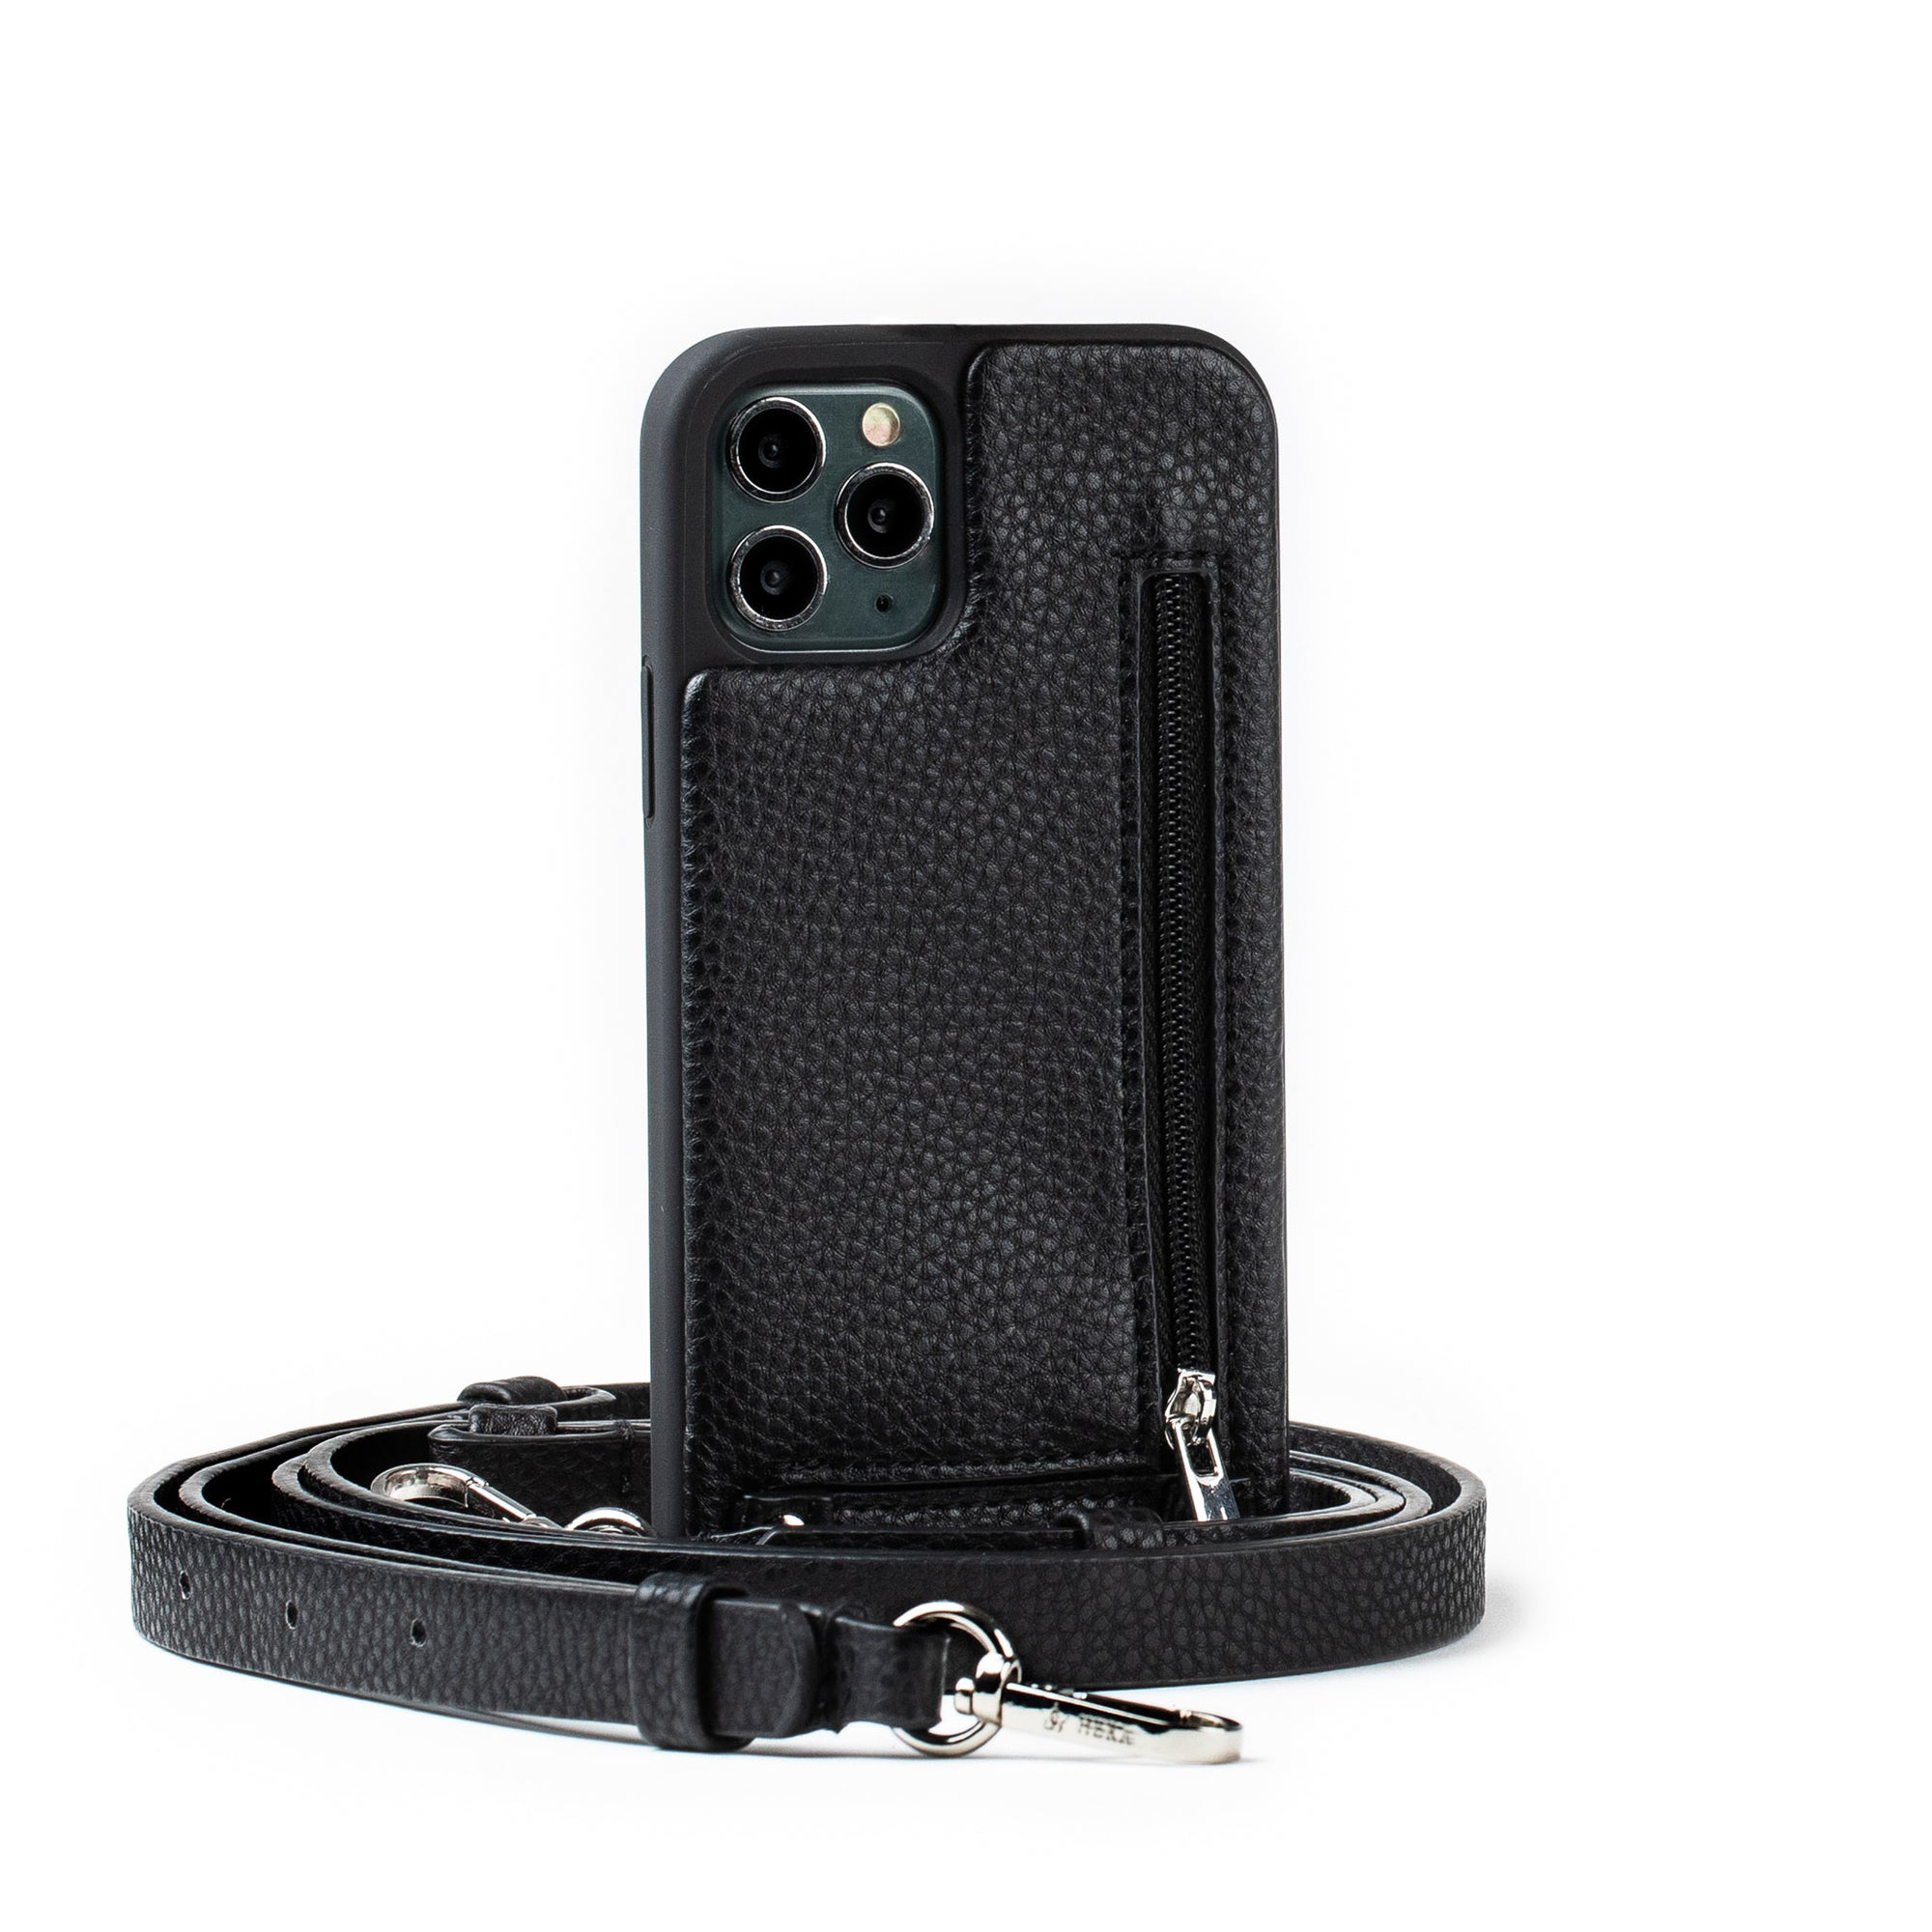 Victoria iPhone Carrying Case for 11 Pro Max